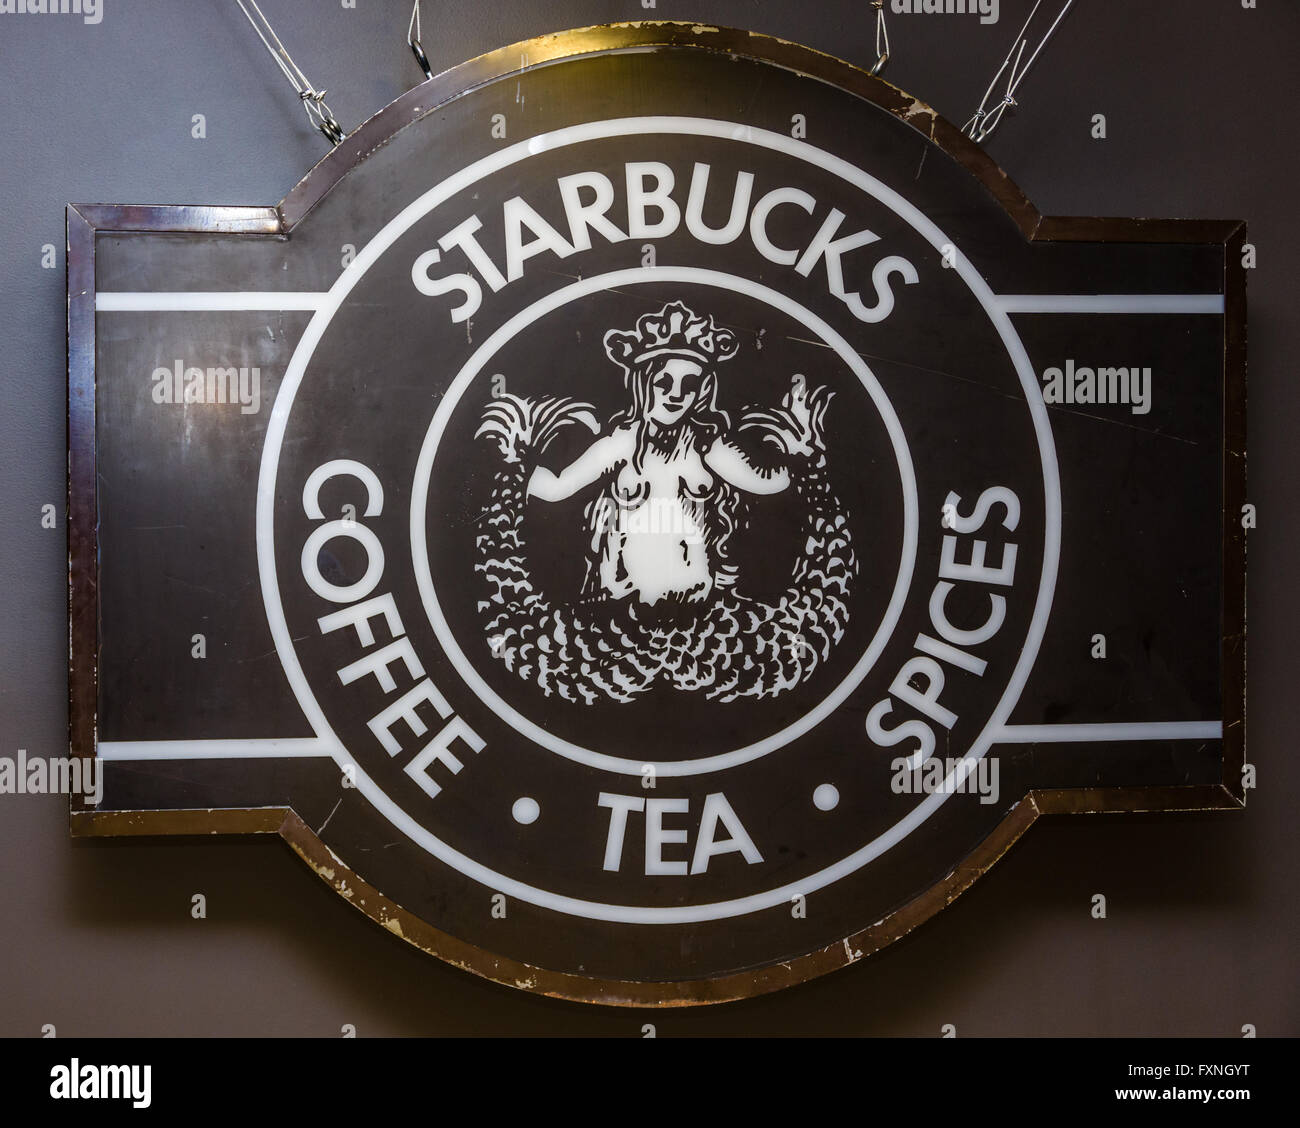 Original Logo And Sign For Starbucks Coffe At The Starbucks